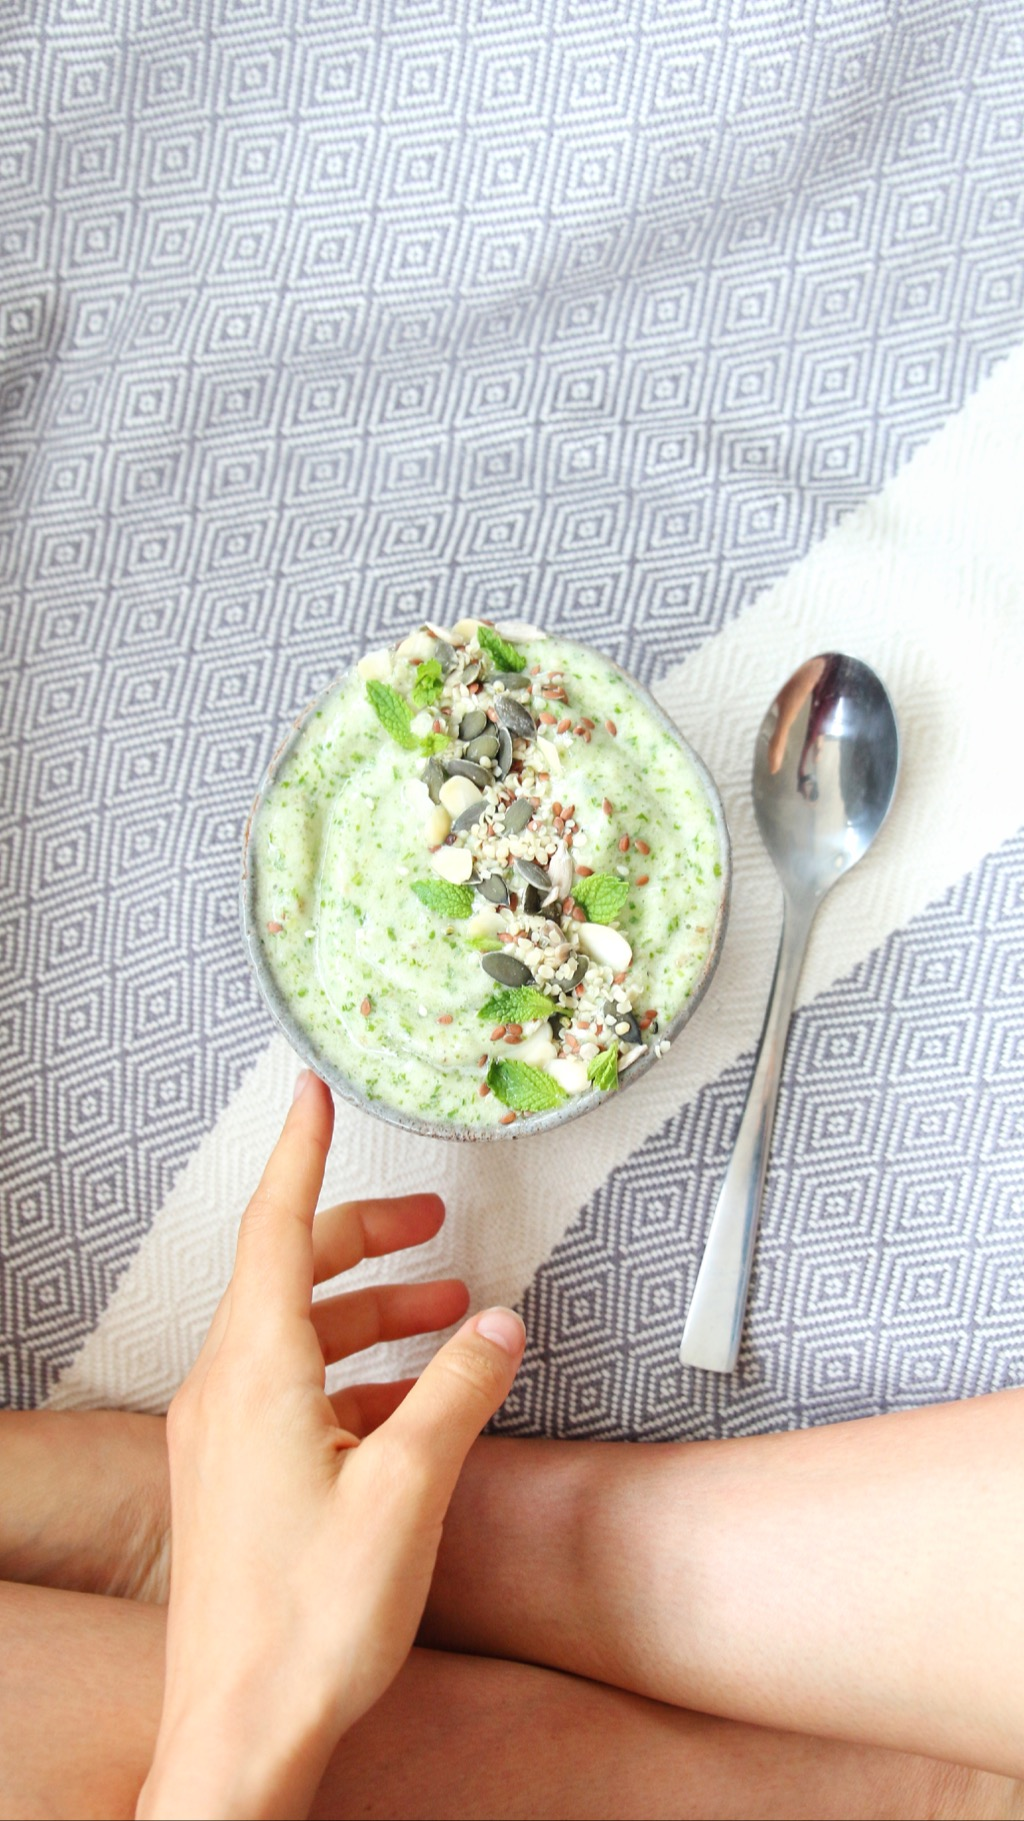 - Blend: 1 frozen banana, 1 frozen apple (cubed), frozen baby spinach leaves (as much as you like) and water.Top it with: A seed mix (pumpkin, flax and sunflower), fresh mint and hemp hearts.